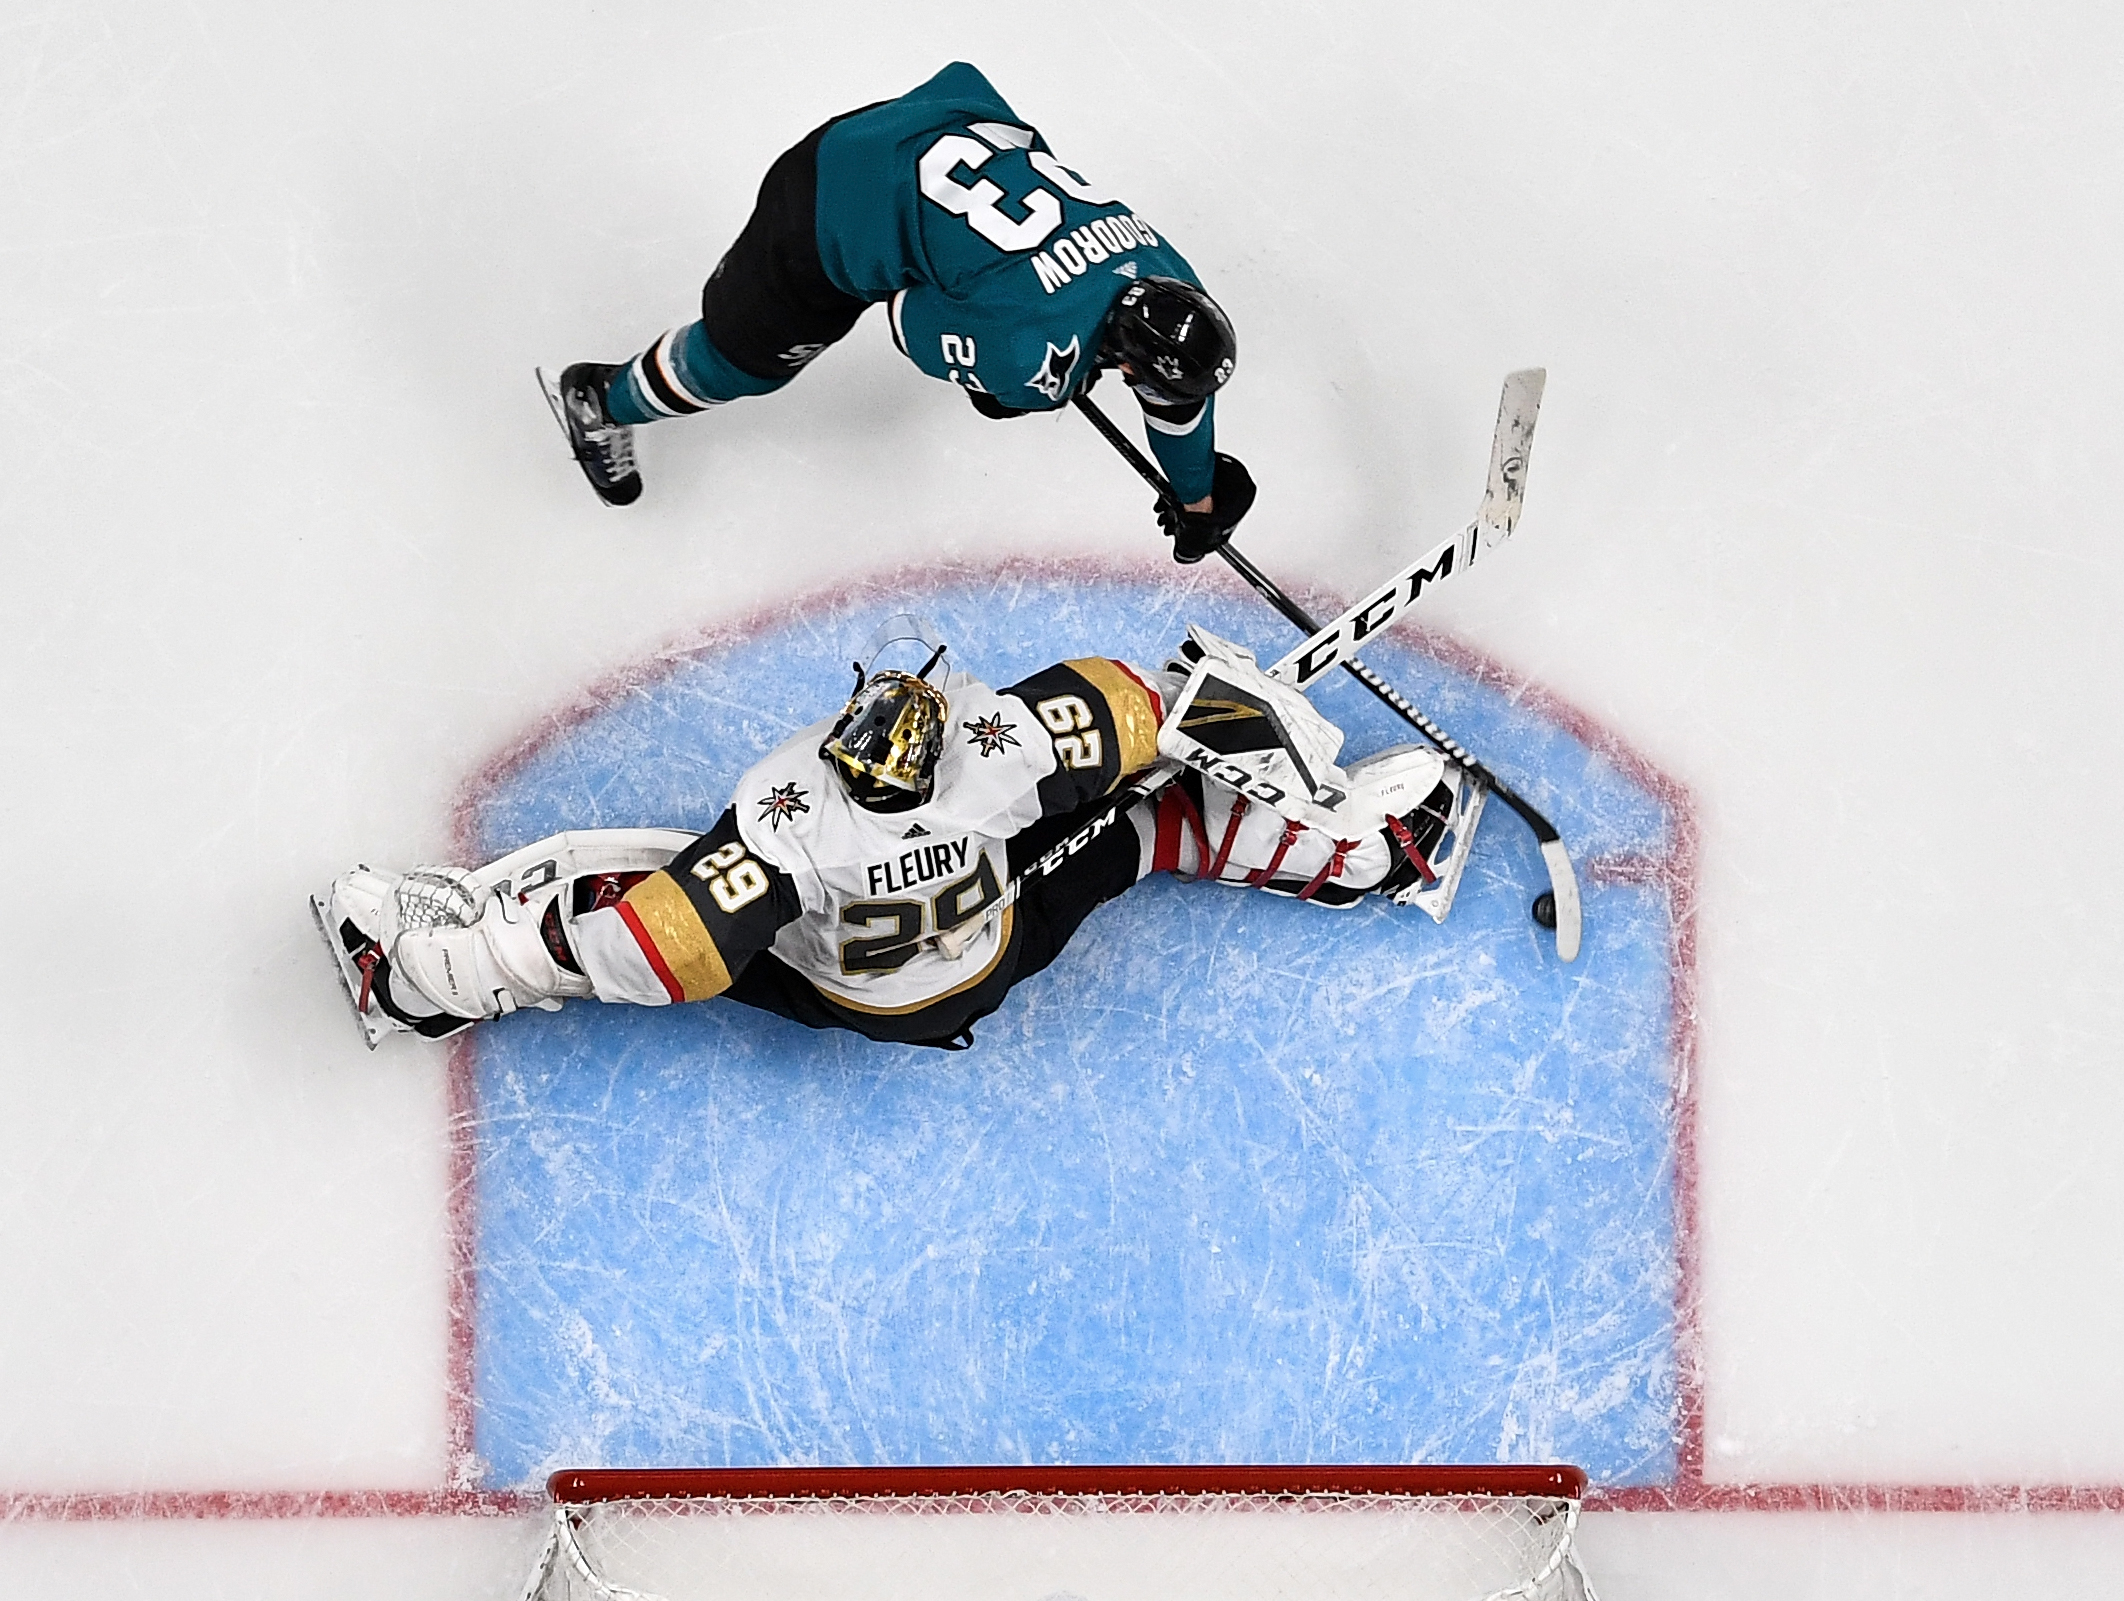 An overhead view as Barclay Goodrow #23 of the San Jose Sharks scores the game-winning goal against Marc-Andre Fleury #29 of the Vegas Golden Knights in Game 7 of the Western Conference First Round during the 2019 NHL Stanley Cup Playoffs at SAP Center on April 23, 2019 in San Jose, California